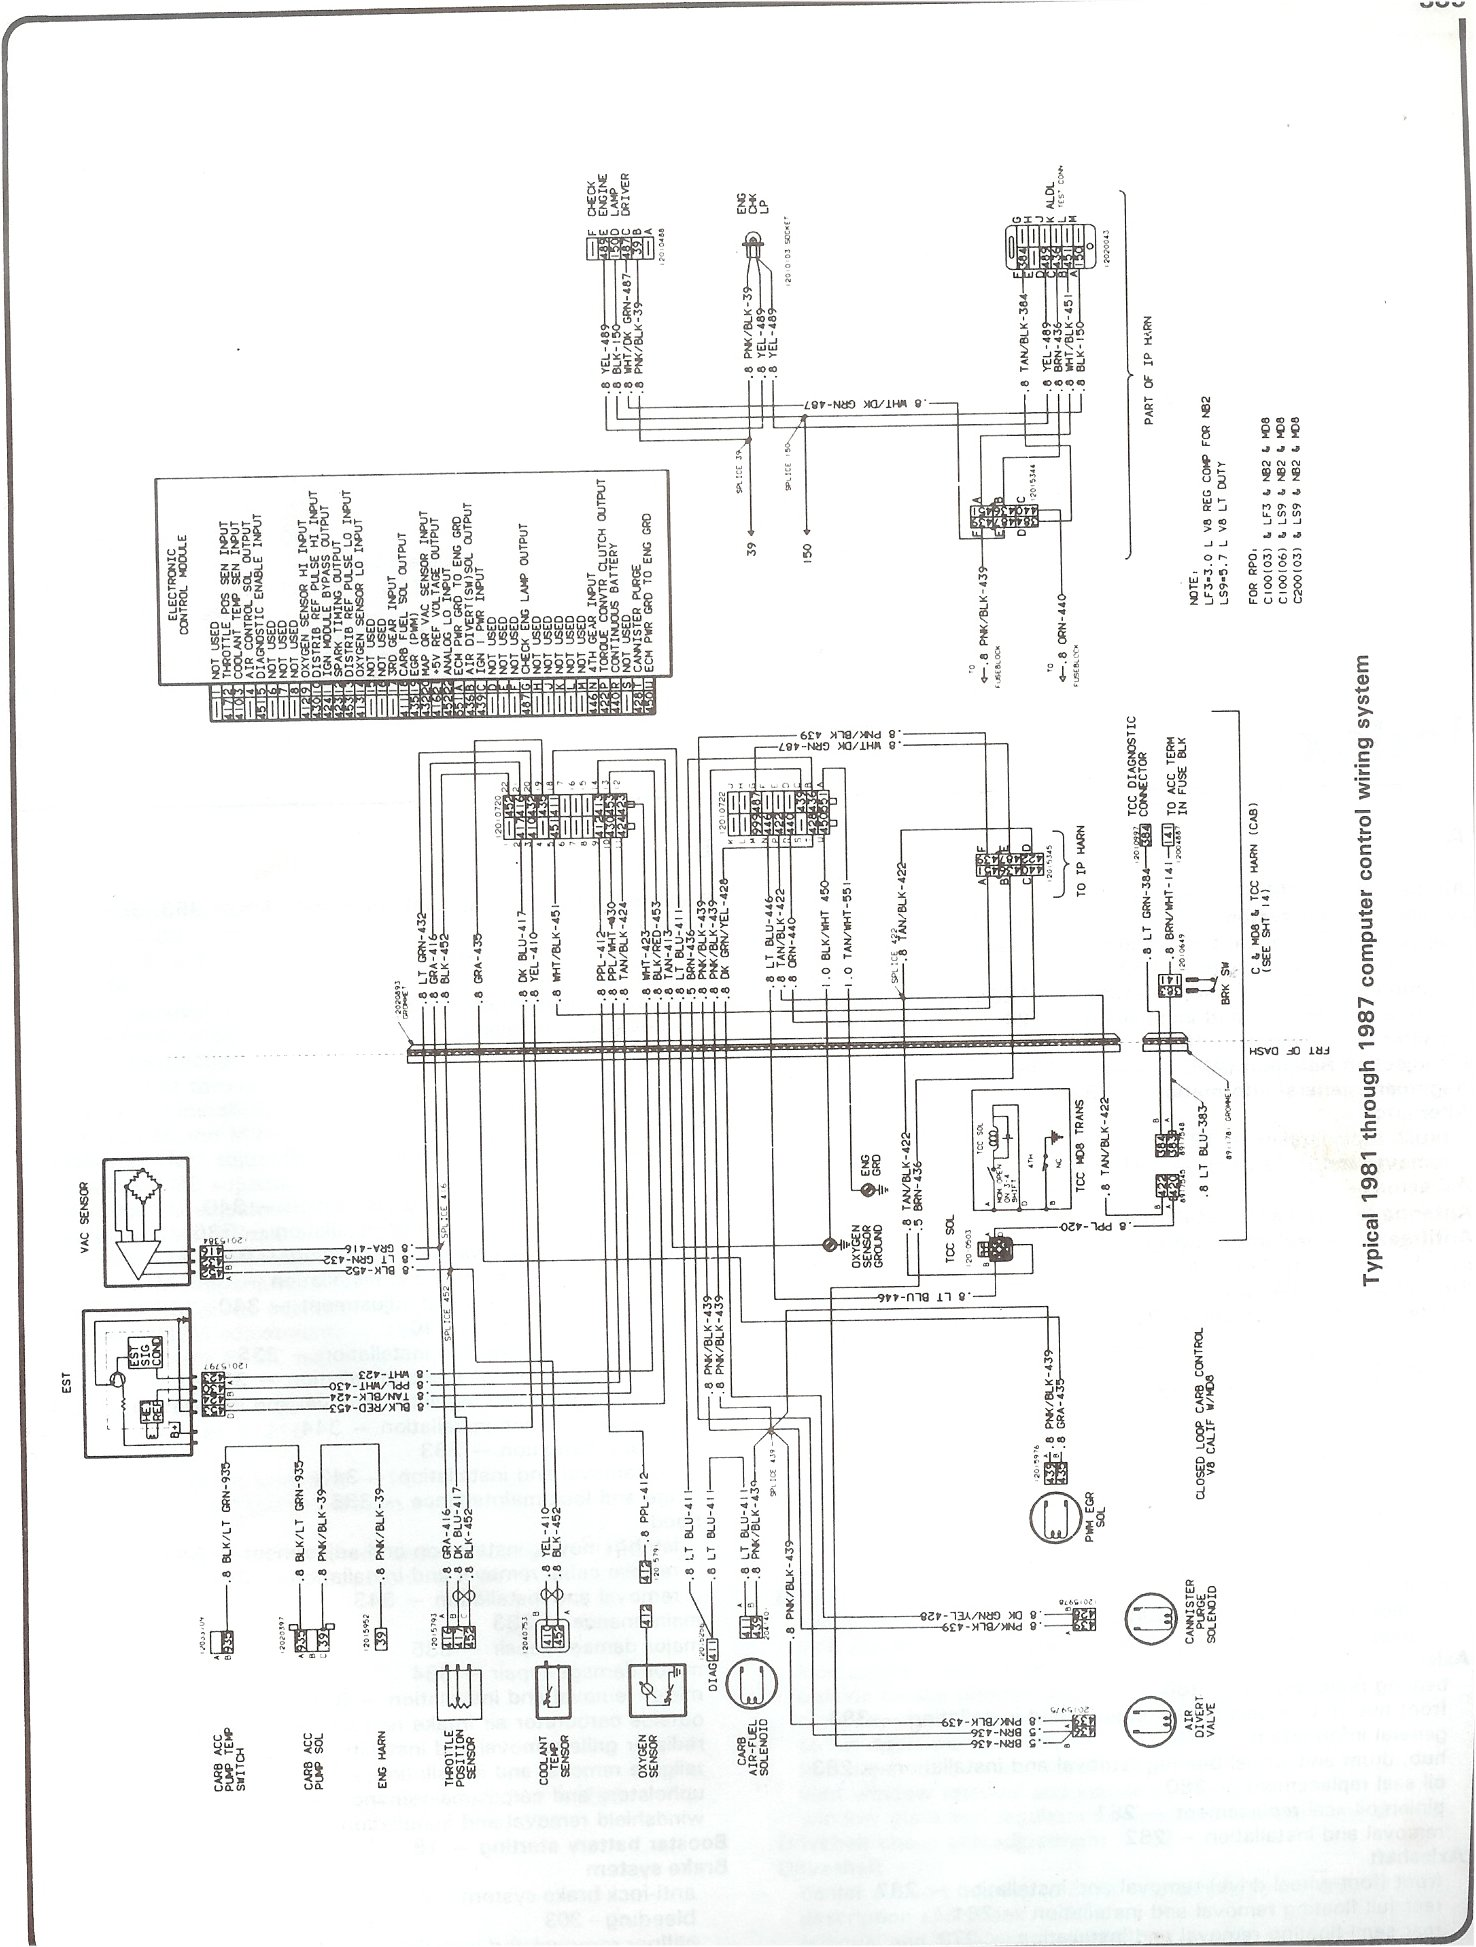 1981 gmc caballero wiring diagram online wiring diagram1981 gmc caballero wiring diagram best wiring librarycomplete 73 87 wiring diagrams rh forum 73 87chevytrucks